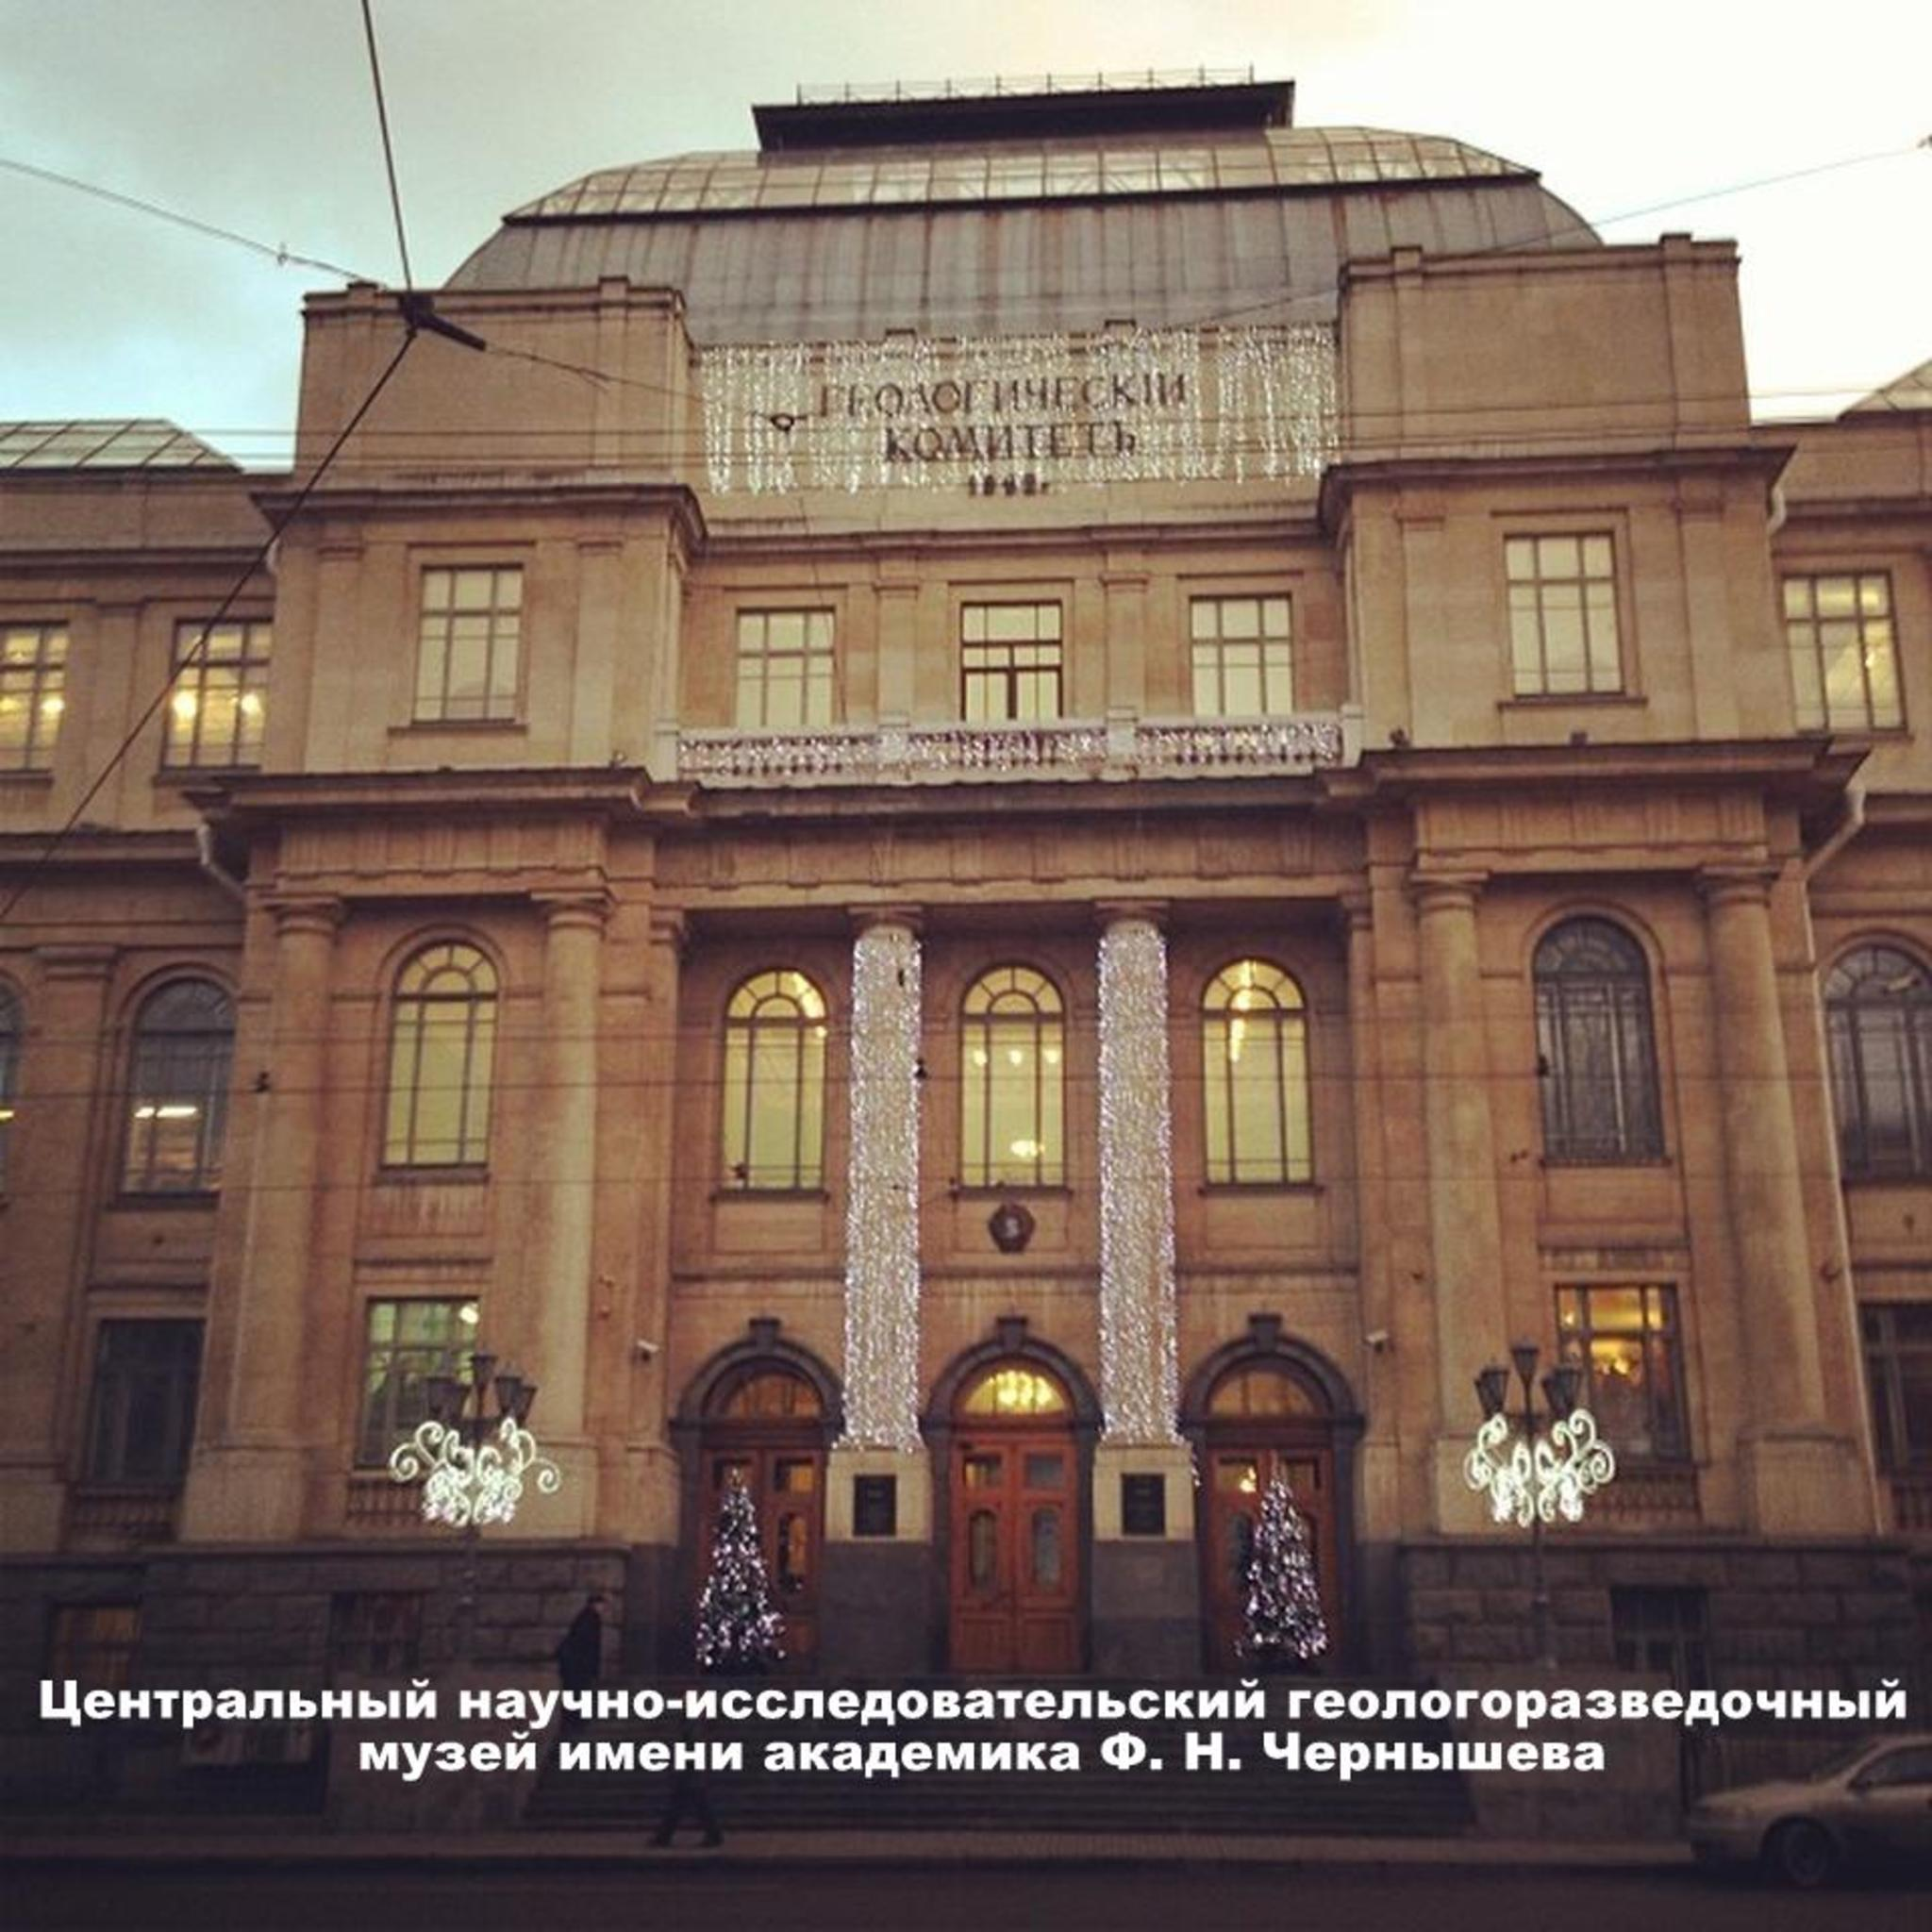 Central Research Geological Museum named after Academician F. N. Chernyshev